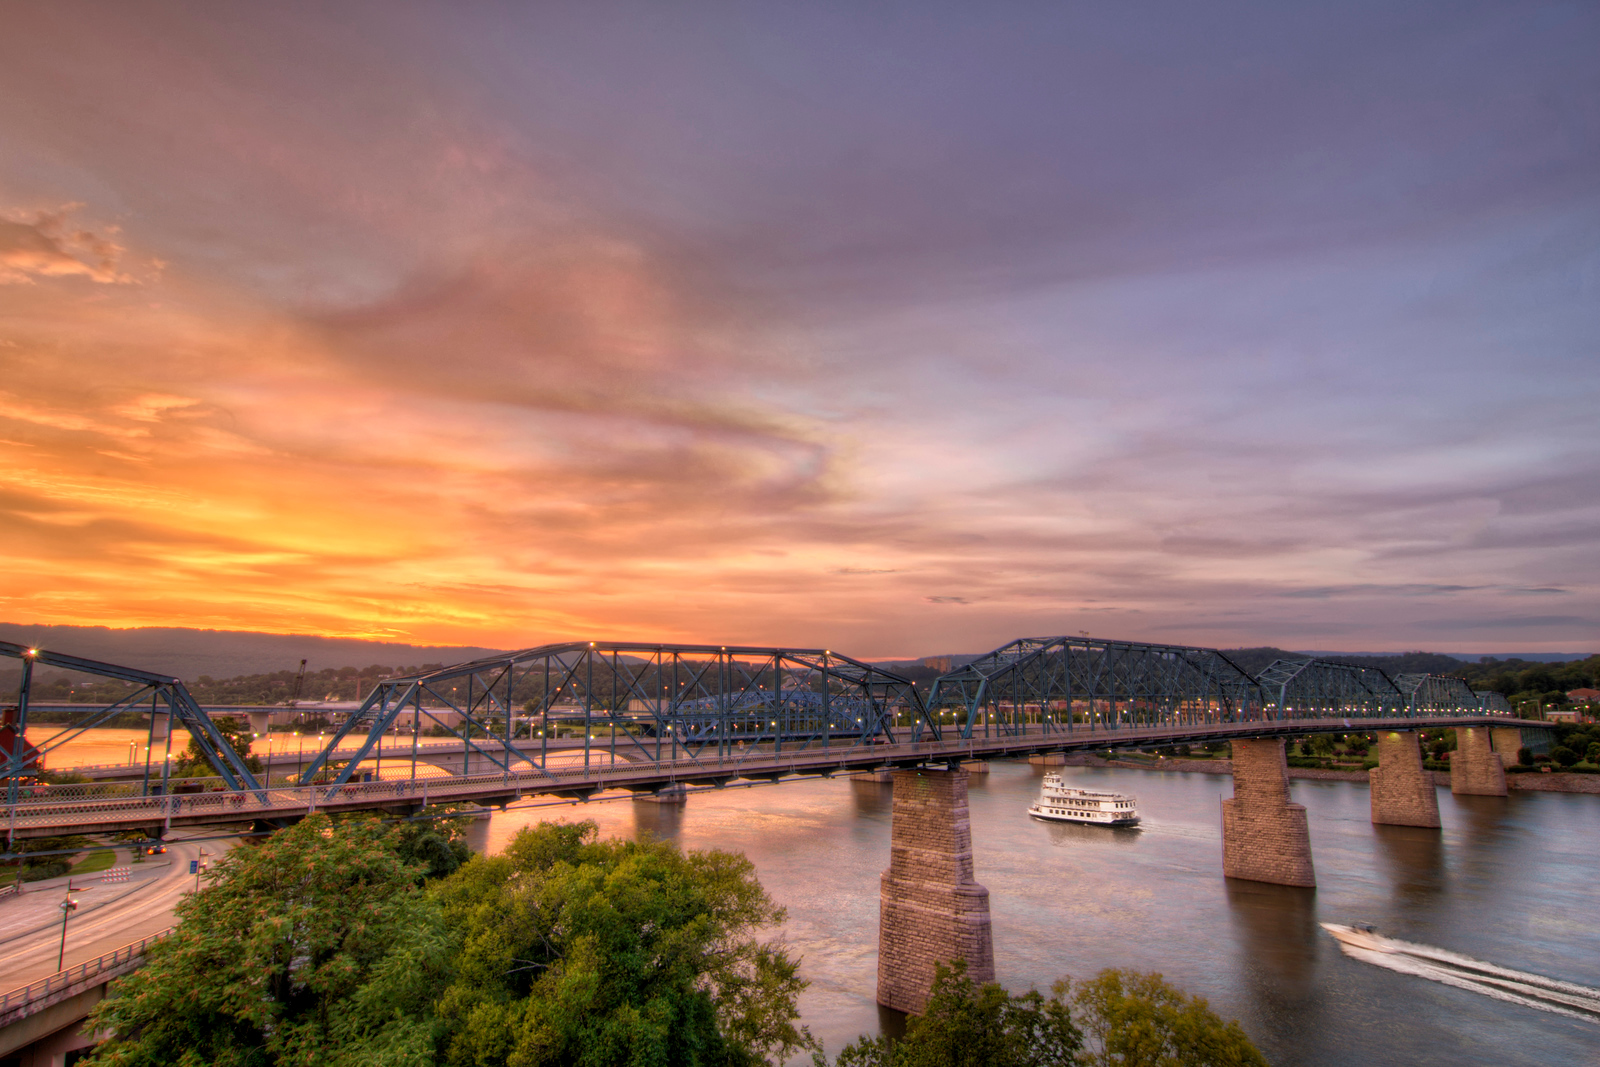 A warm sunset along the Tennessee River as the Southern Belle Riverboat and a private boat pass under the Walnut Street Bridge in Chattanooga, TN on Monday, July 20, 2015. Copyright 2015 Jason Barnette